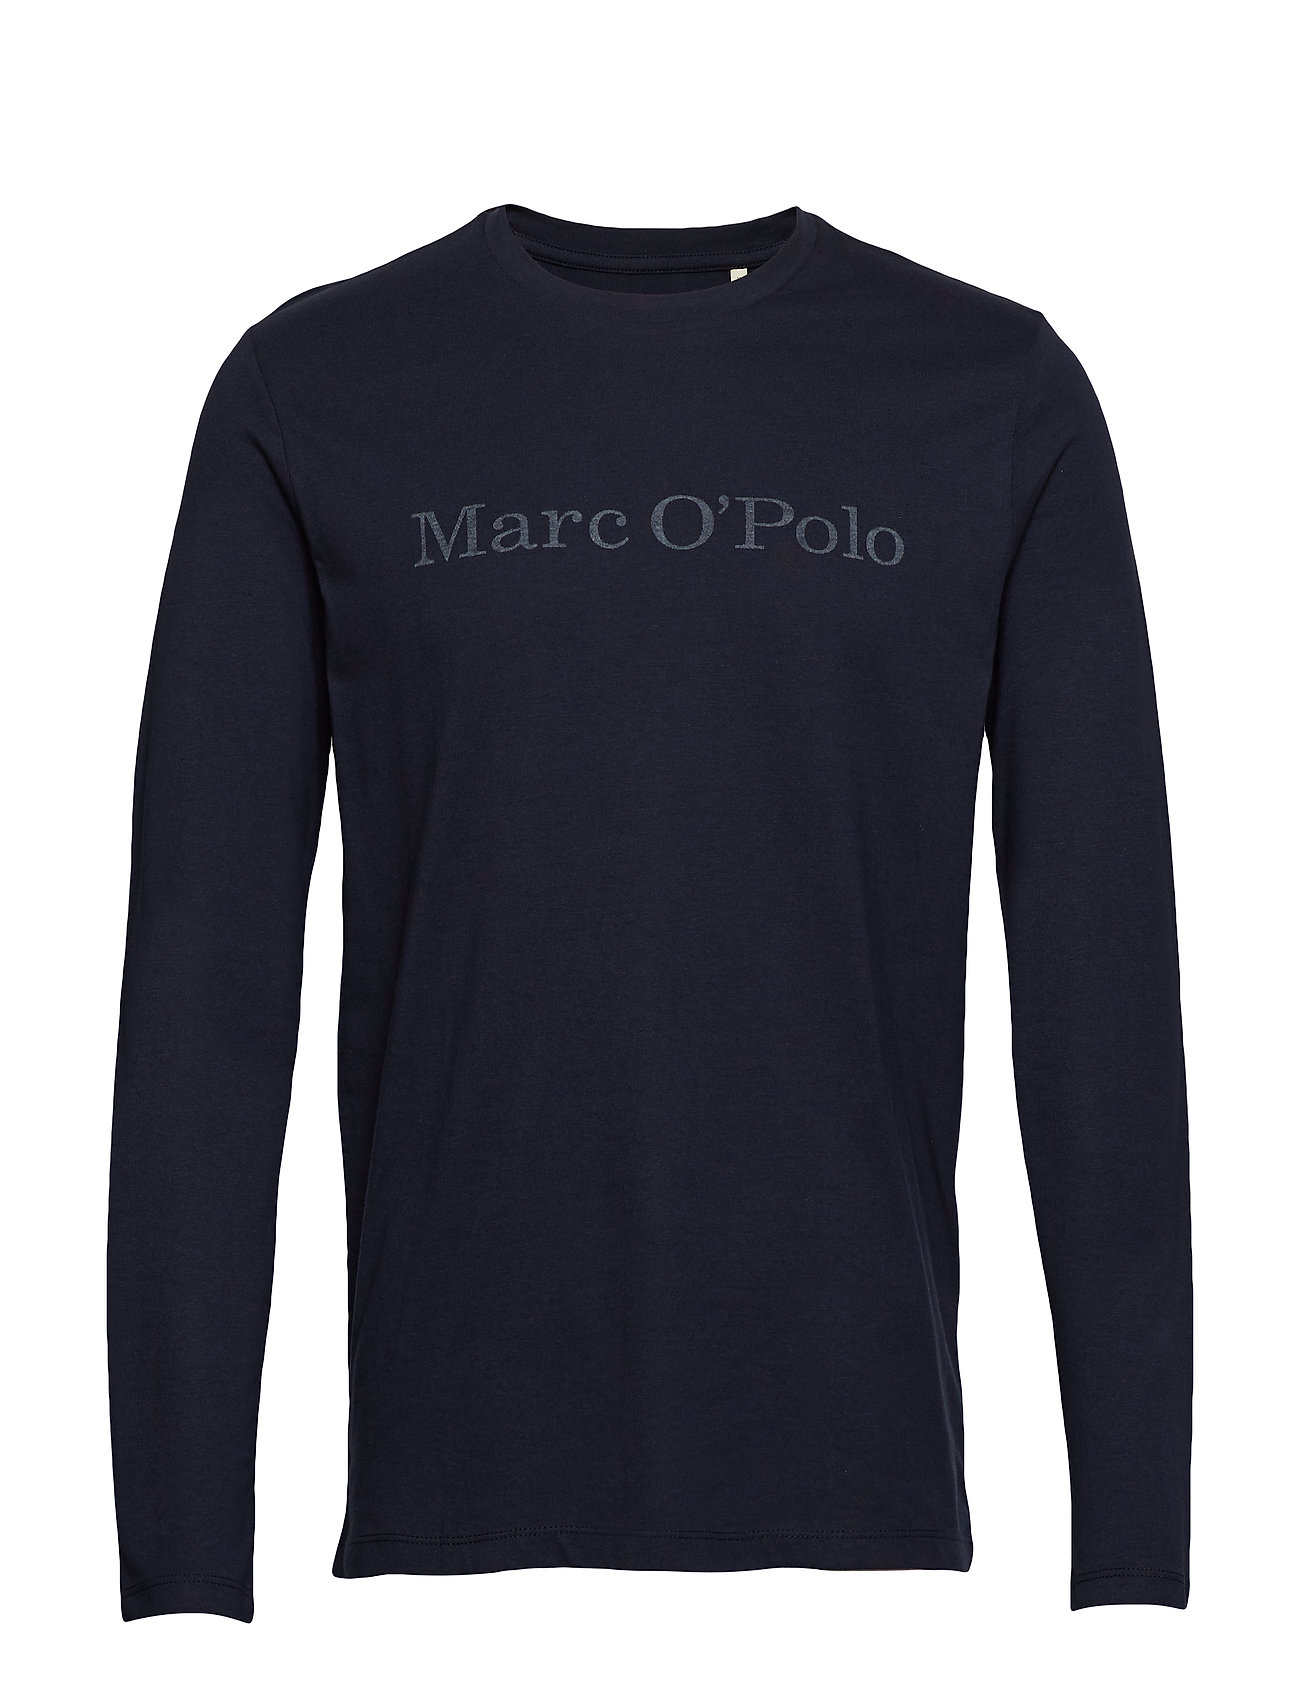 Marc O'Polo T-shirt Long Sleeve - TOTAL ECLIPSE